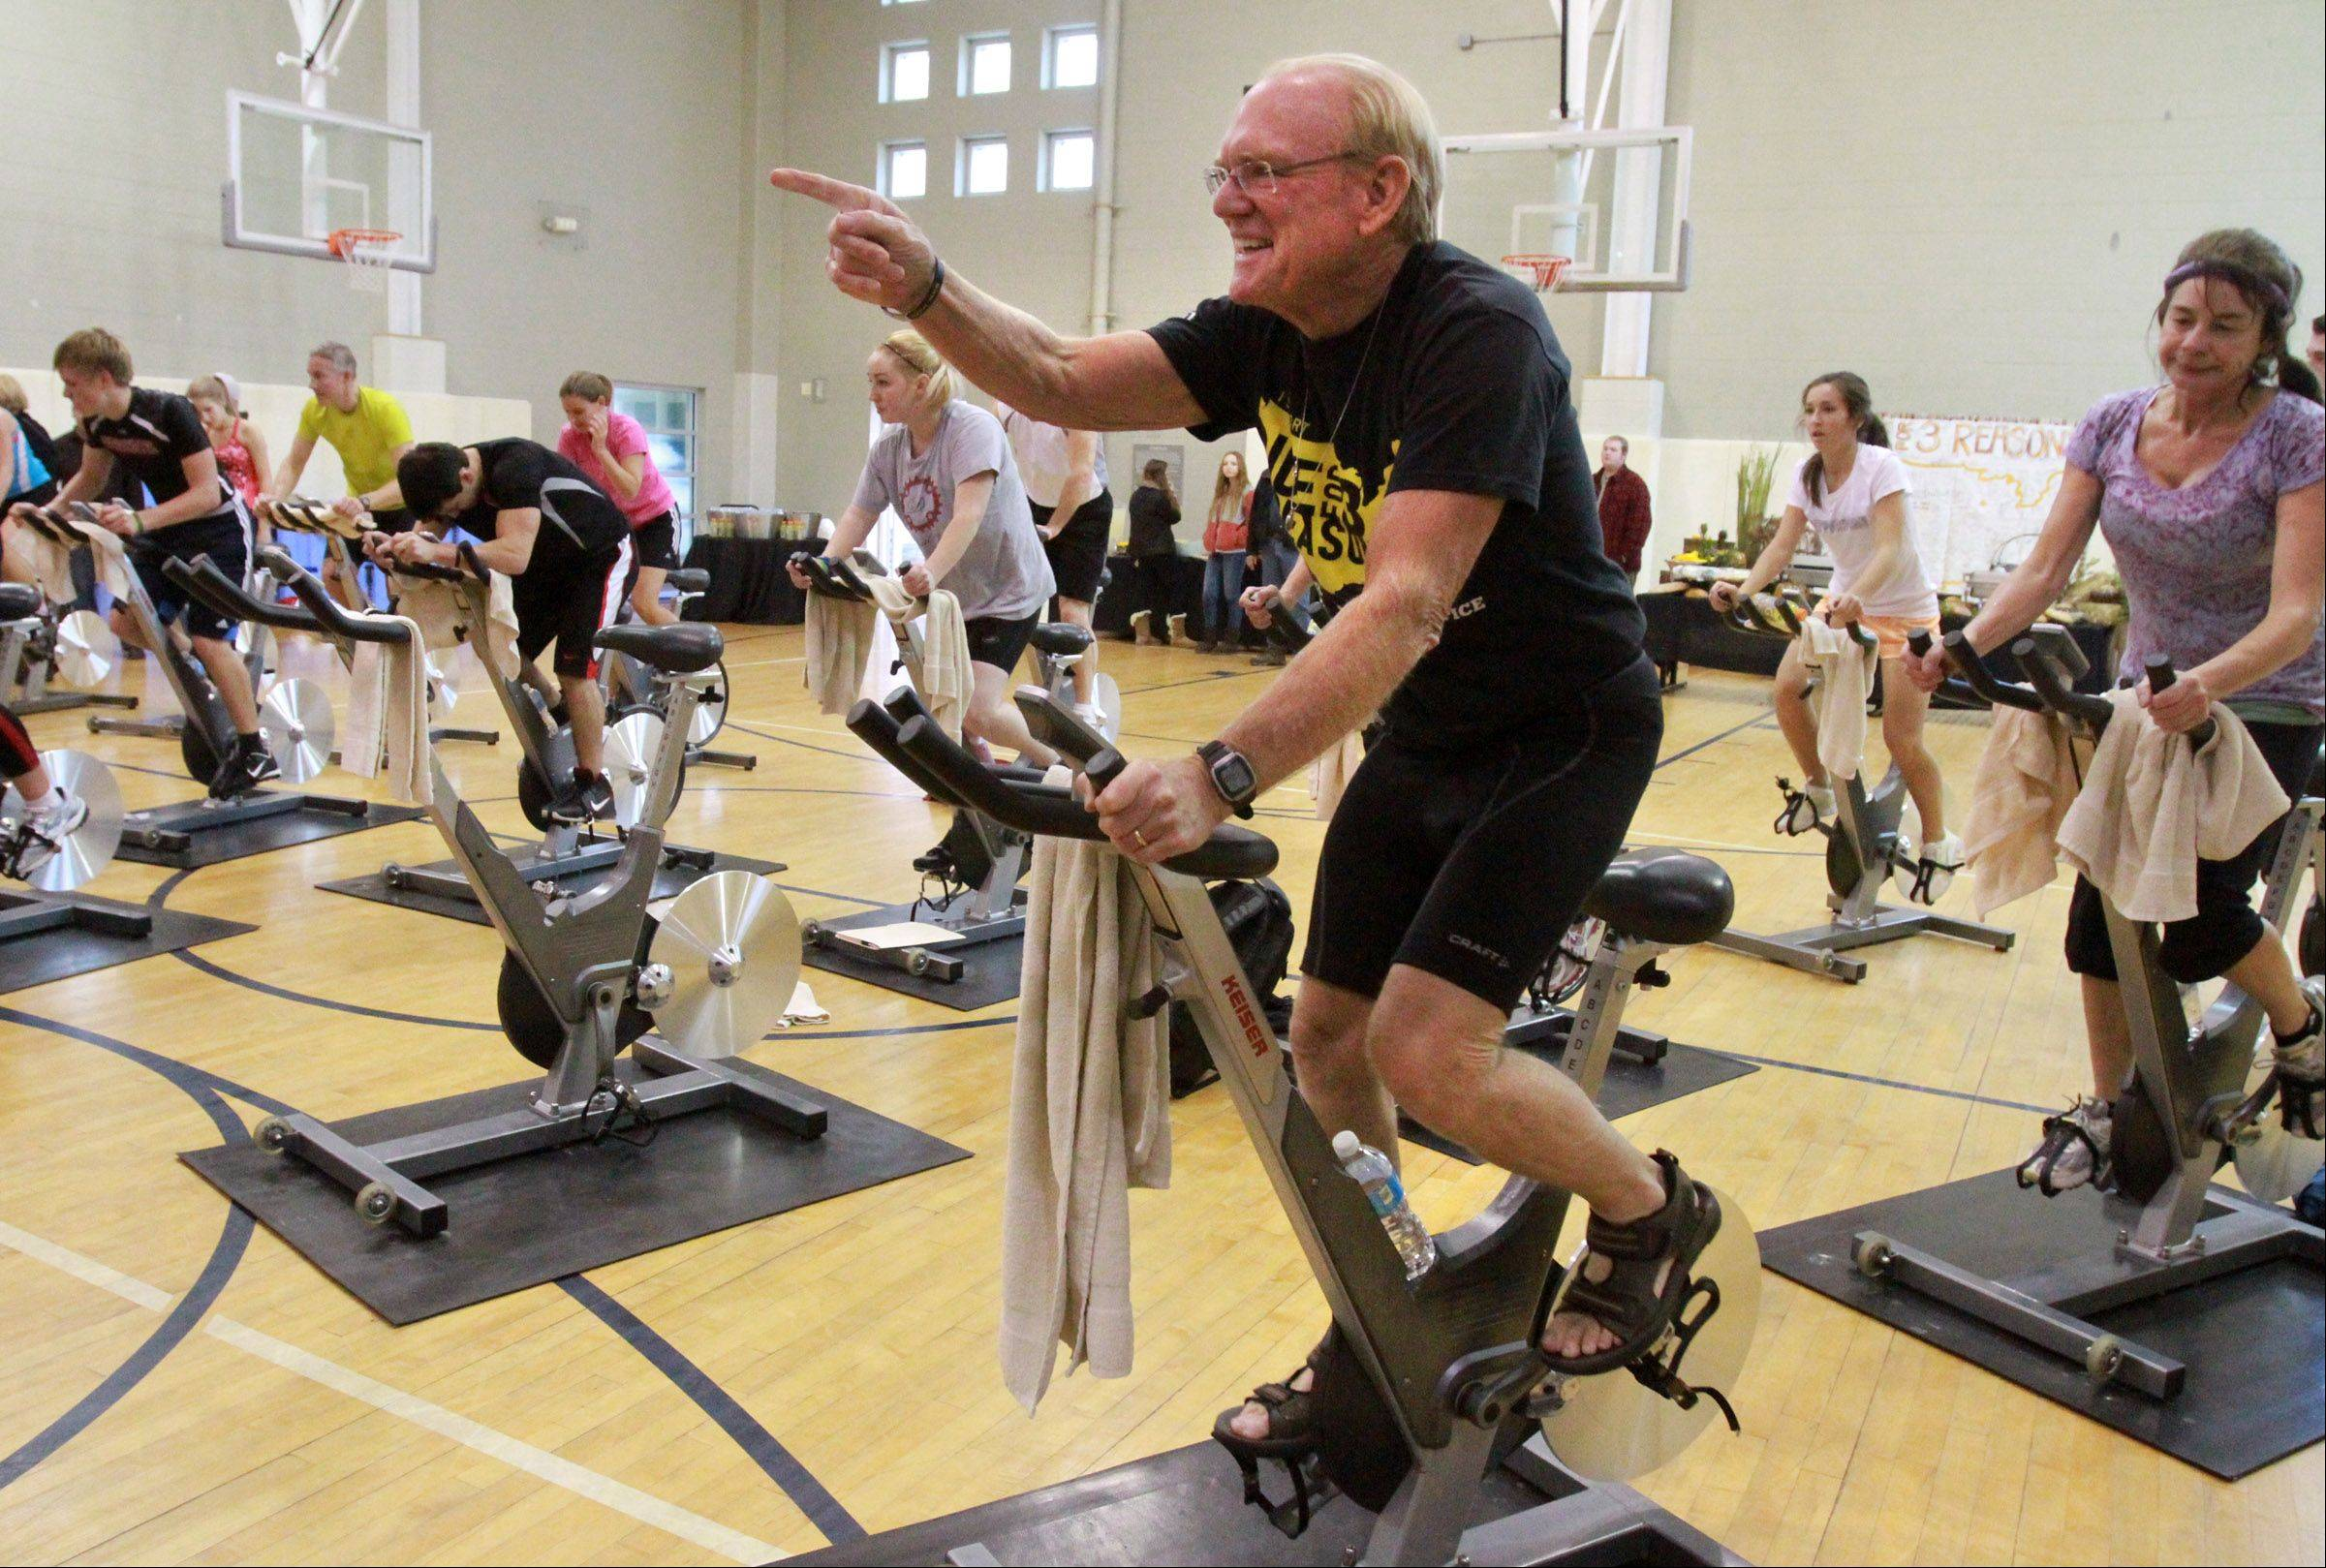 Bicyclist Bob Lee, 70, points to the instructor during a one-hour stationary cycle fundraiser class, just before a welcome home reception for Lee at Good Shepherd Health and Fitness Center in Barrington Saturday.